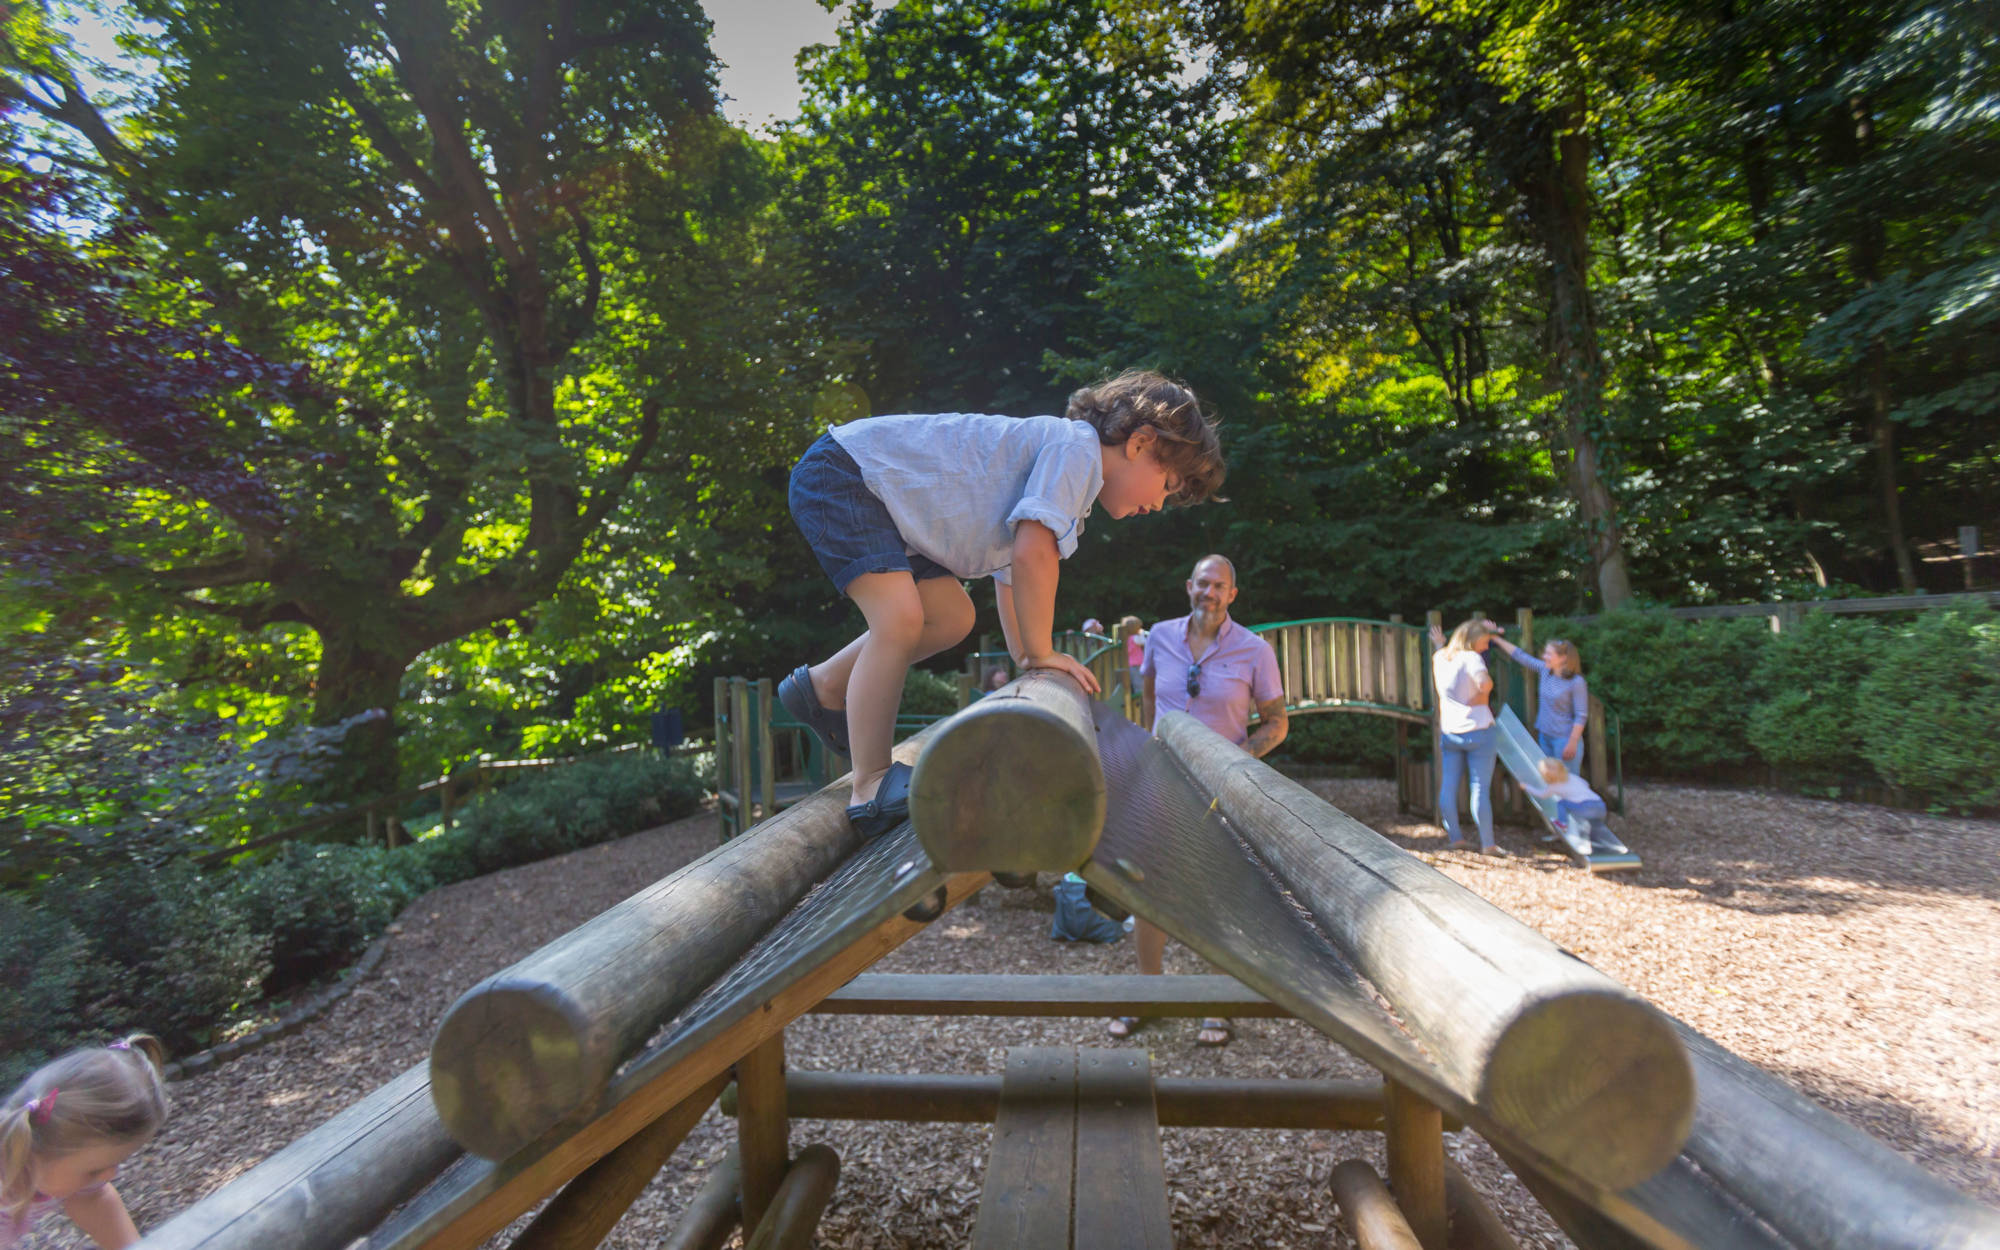 A young visitor using the climbing frame